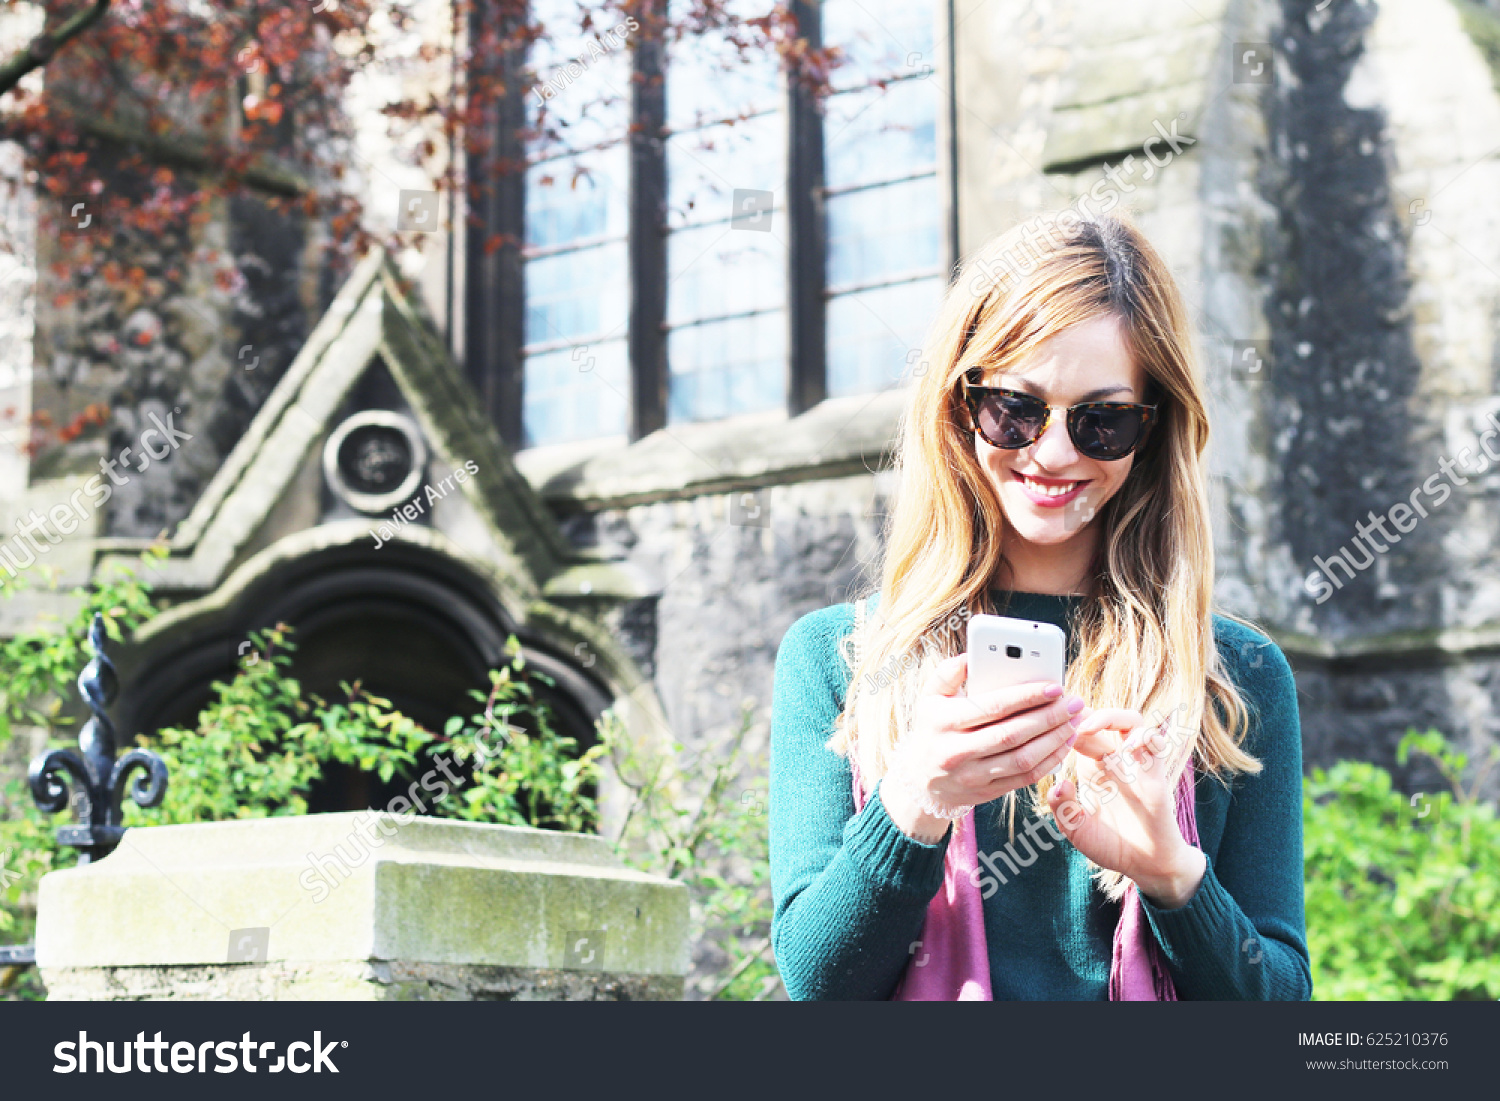 Fashion week Girl stylish app how to use for woman